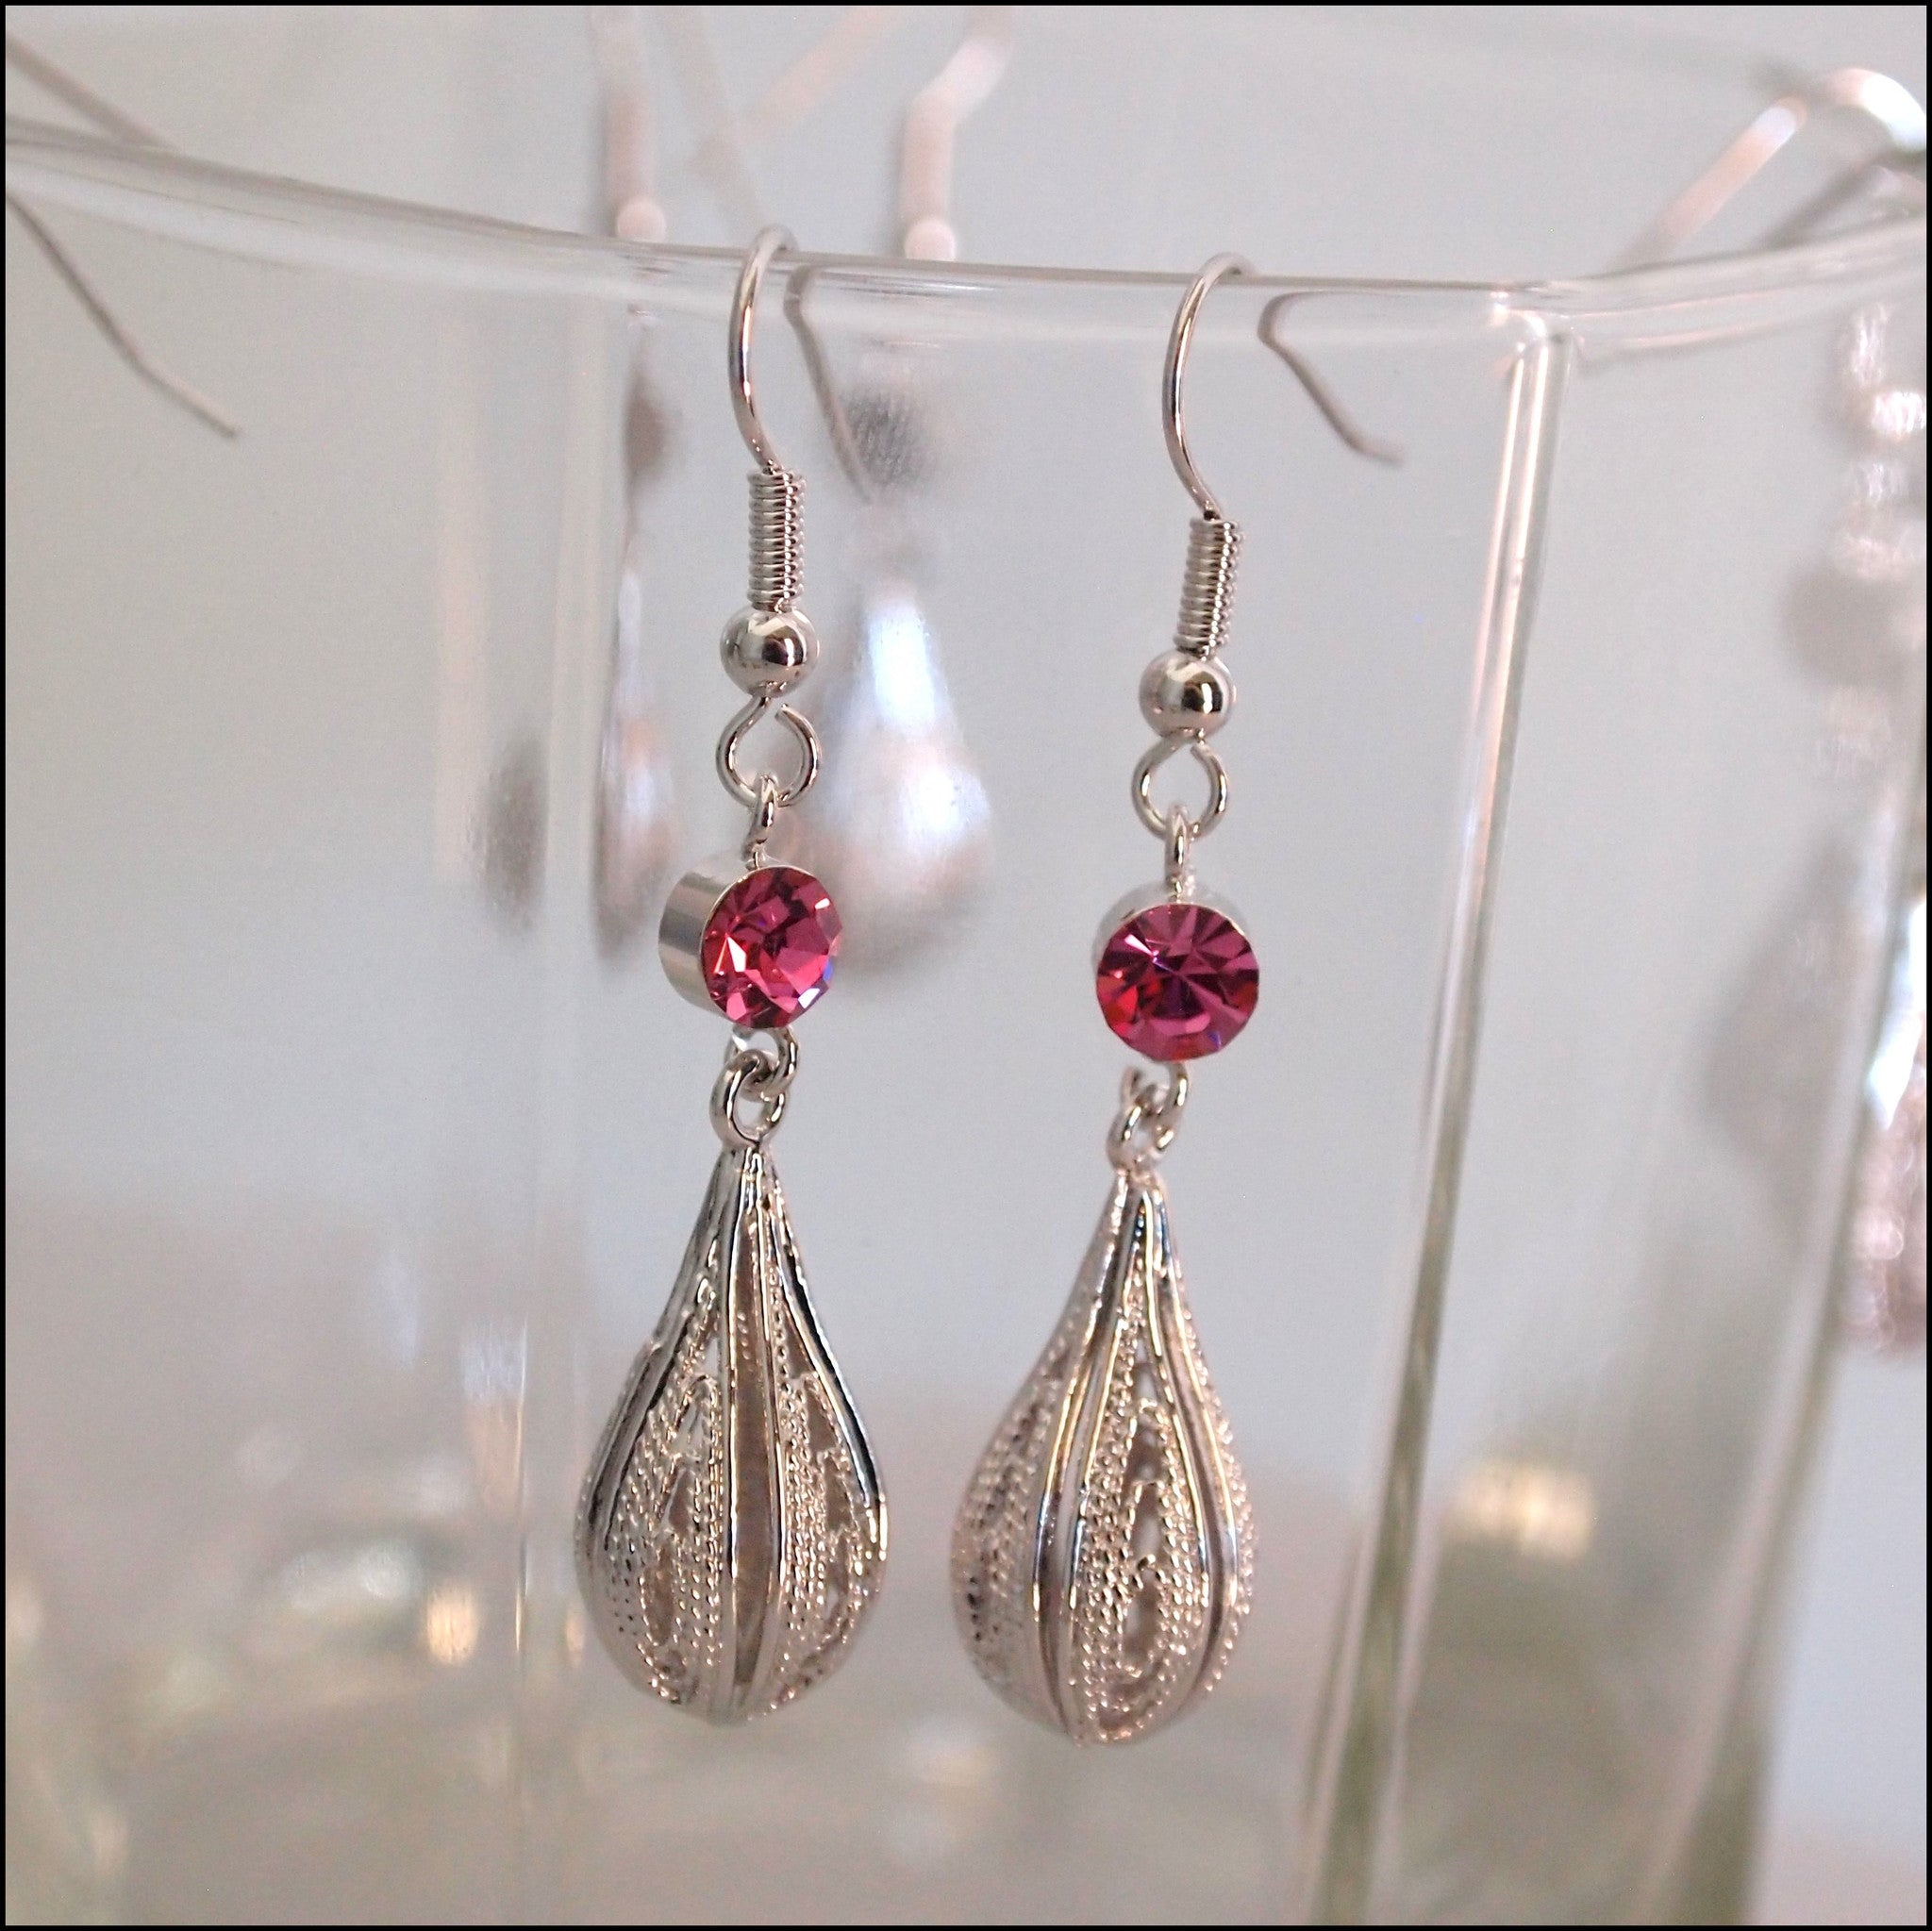 Crystal Rain Drop Earrings - Pink - Find Something Special